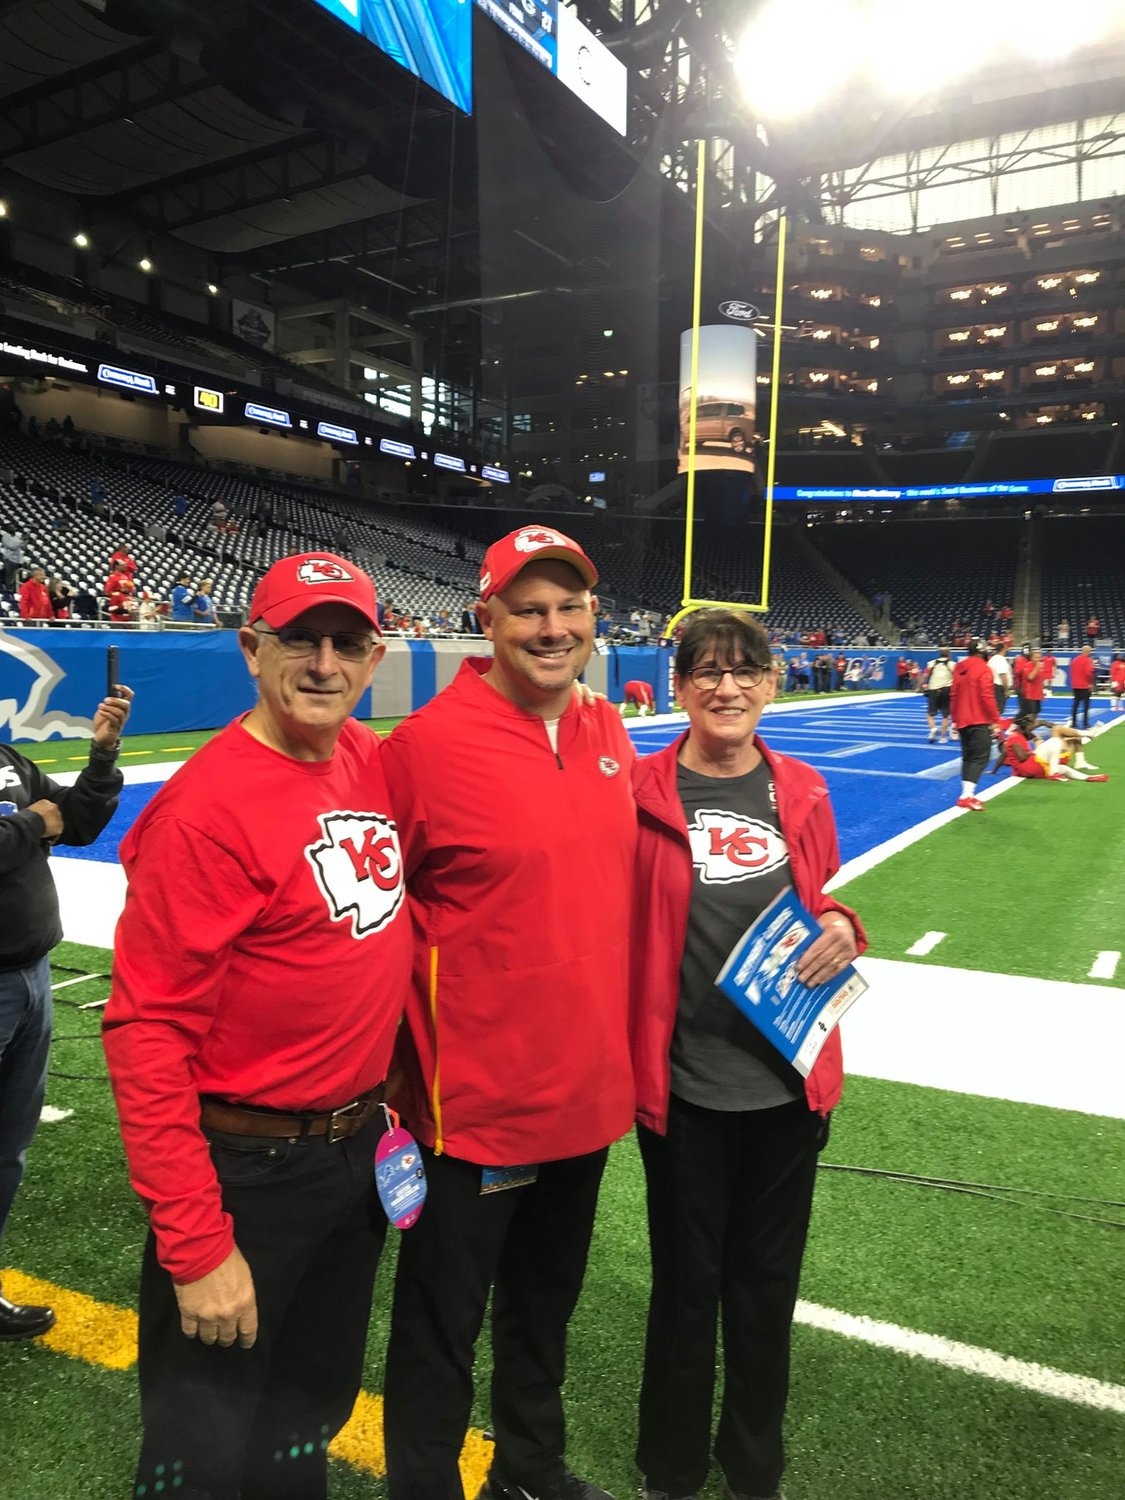 Tom and Cathy House with their son Matt House, linebackers coach for the Kansas City Chiefs.